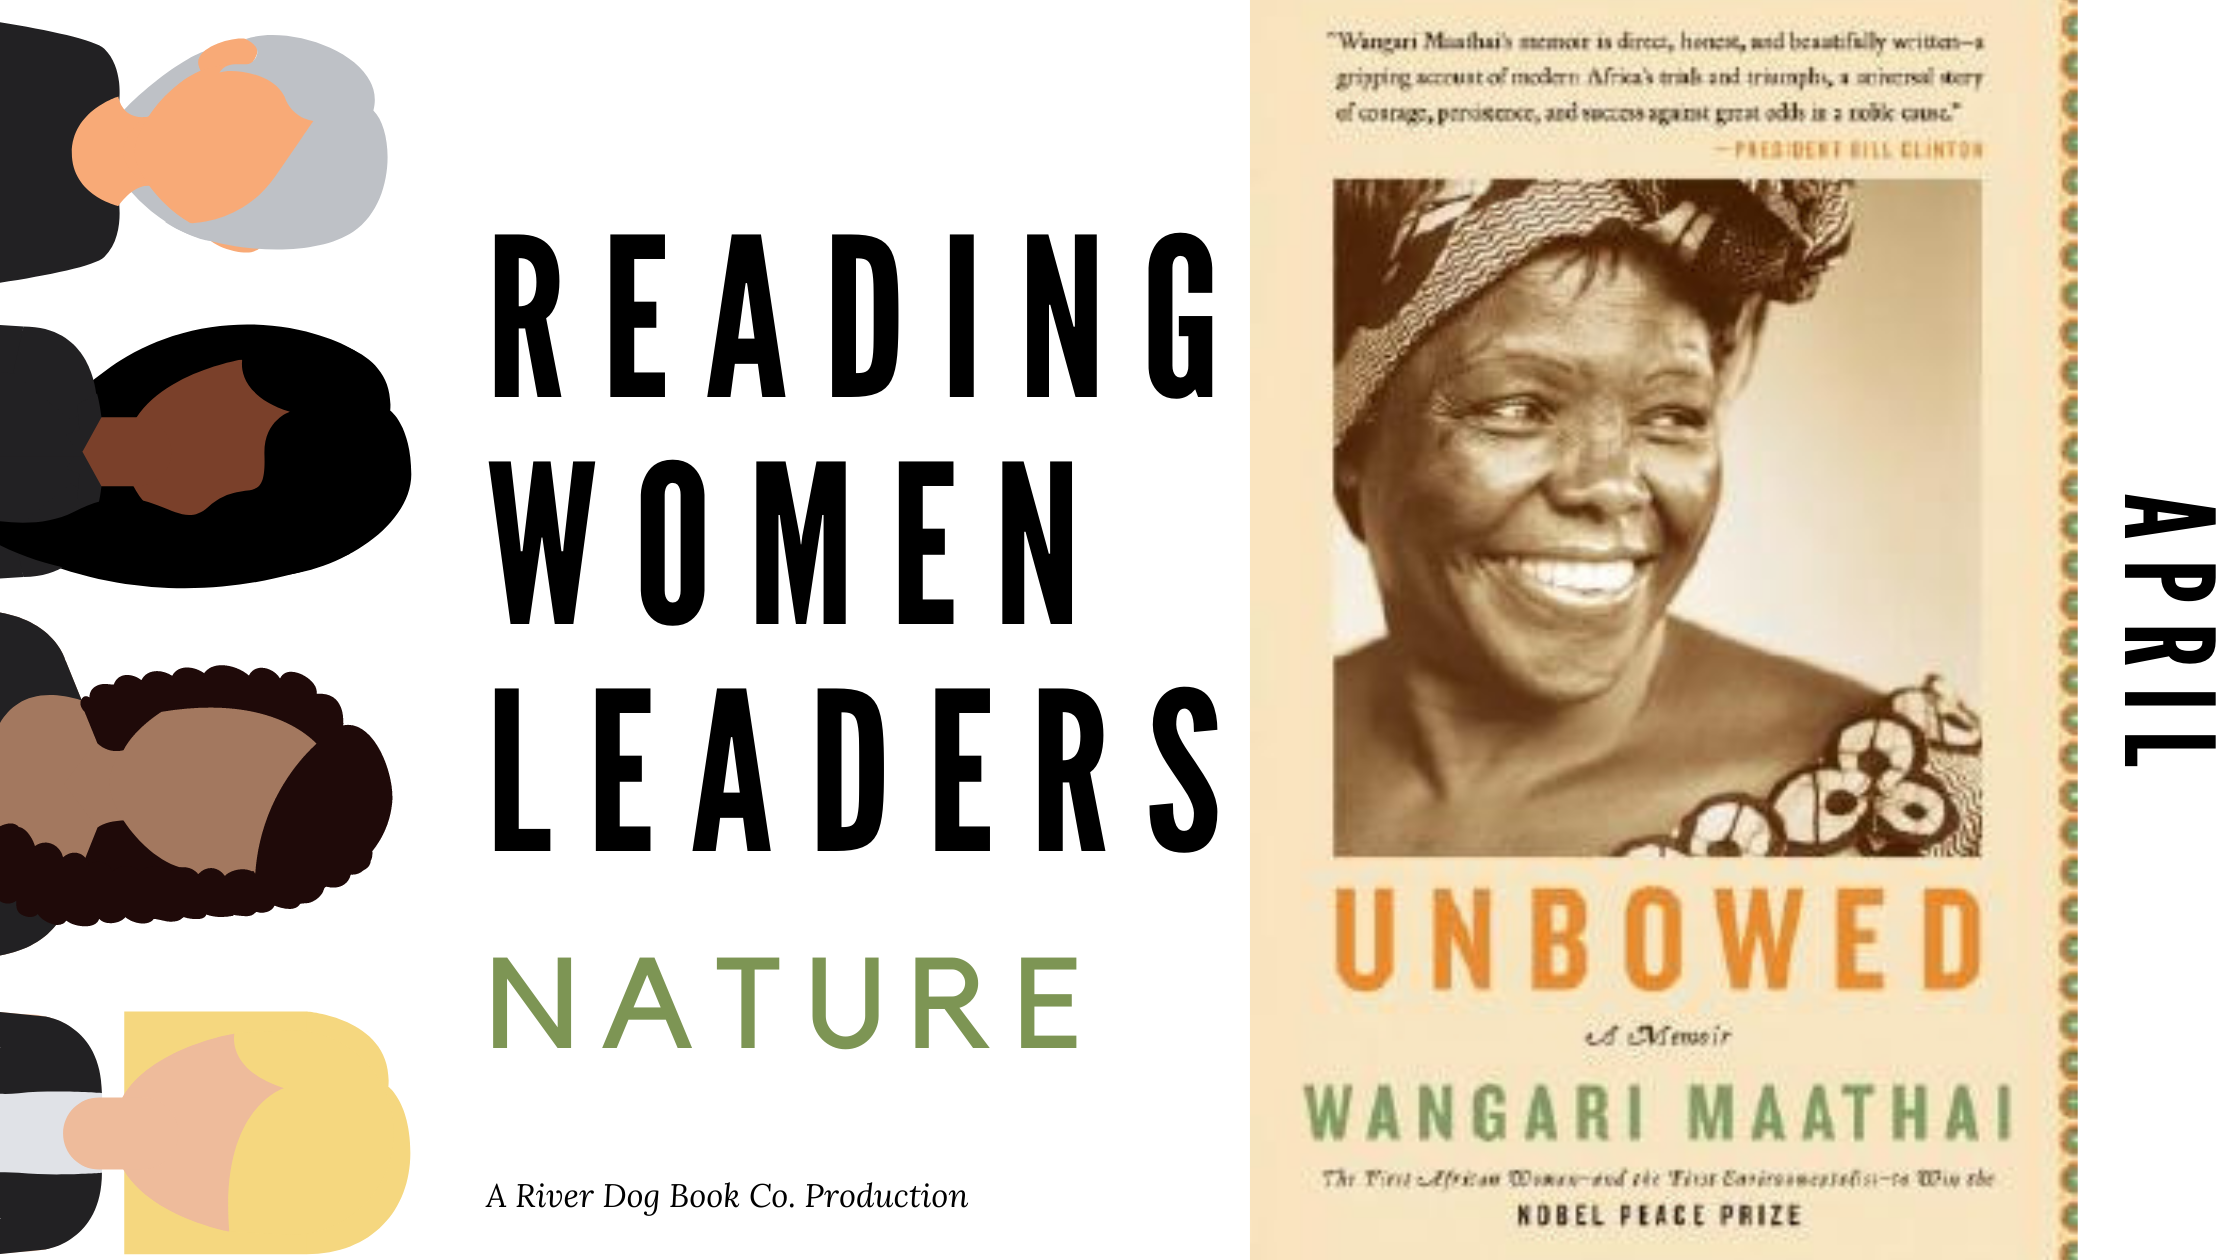 Reading Women Leaders: Nature